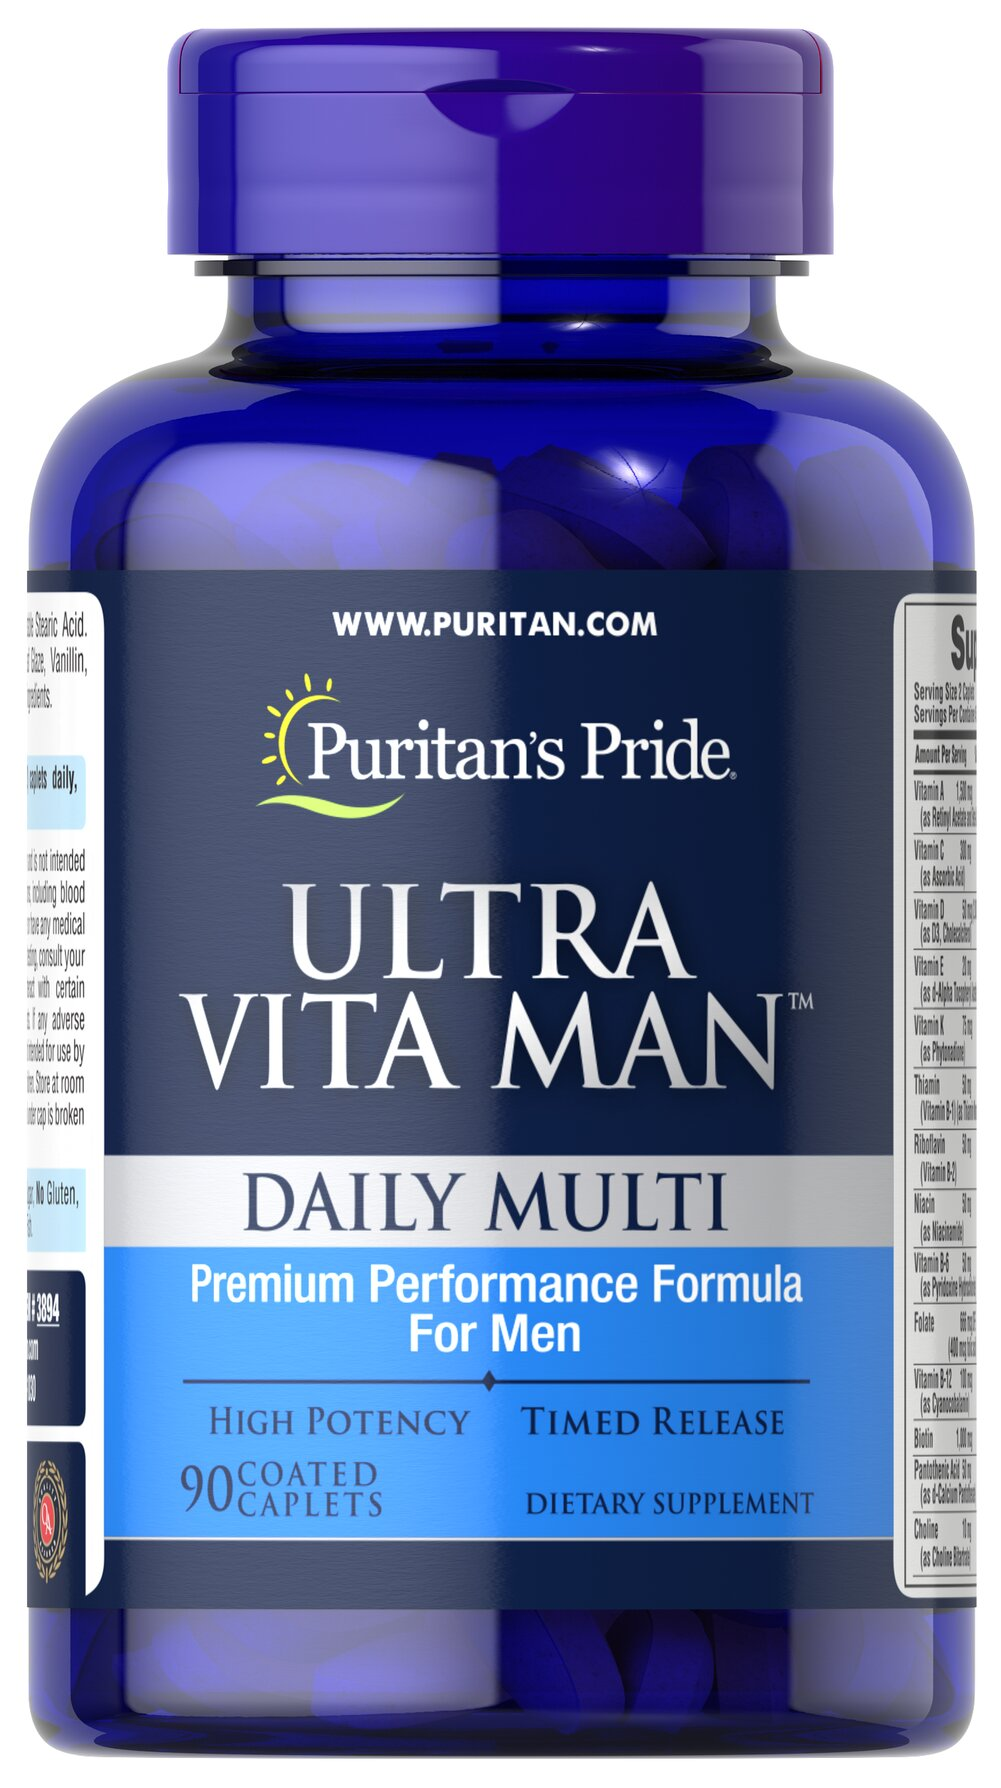 Ultra Vita Man™ Time Release <p>This time release multivitamins  delivers vitamins and minerals shown to be beneficial to men's overall wellness. From antioxidant and immune support to cardiovascular health, Ultra Vita Man is ideal for today's on-the-go men!**</p><p>Diabetics/Hypoglycemics: Use only under a doctor's supervision because this product contains chromium which may enhance insulin sensitivity and may affect your blood glucose levels.</p> 90 Caplets